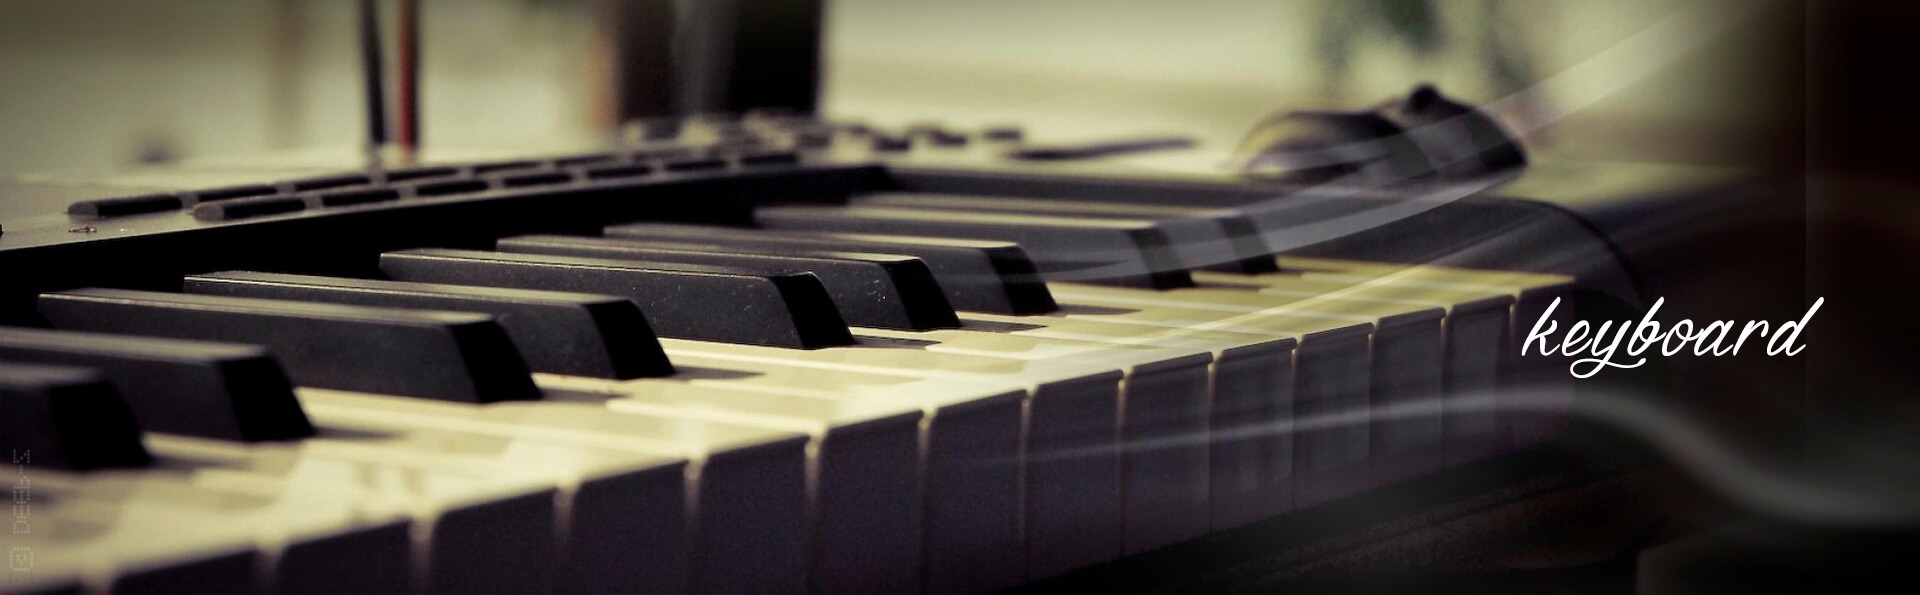 Keyboard lessons at Dubai Music School